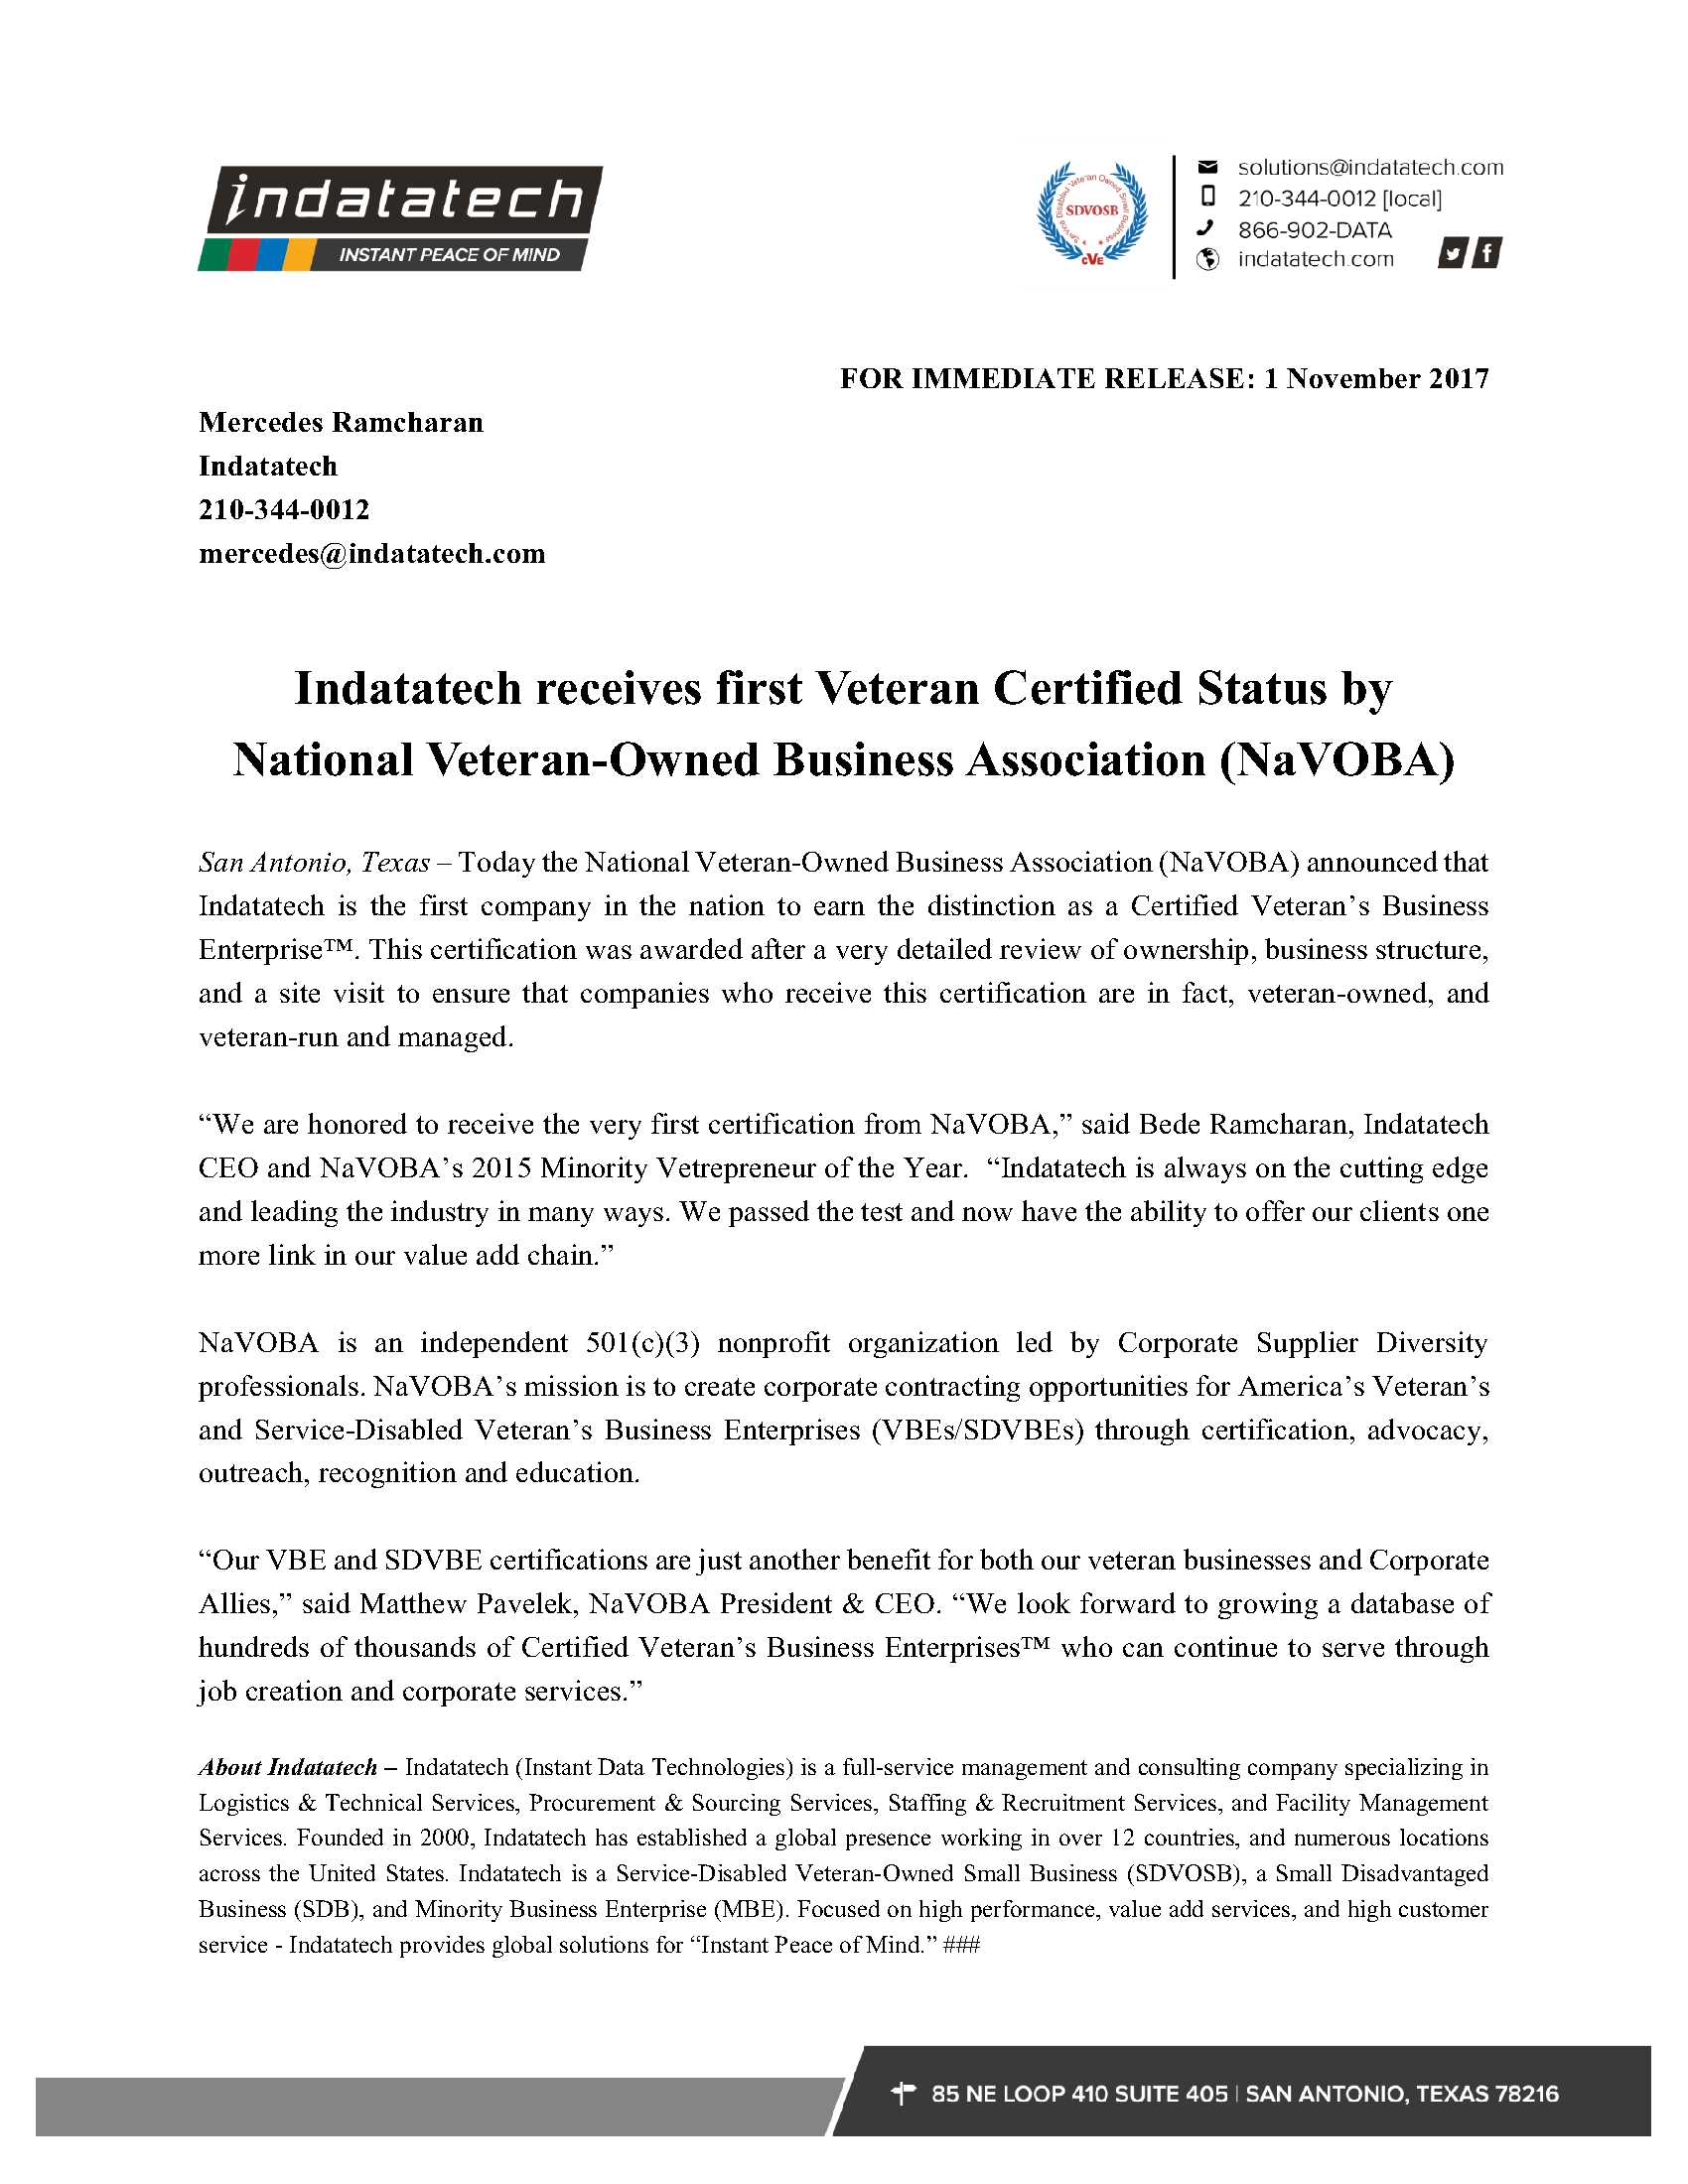 Indatatech receives first veteran certified status by national indatatech receives first veteran certified status by national veteran owned business association navoba xflitez Gallery